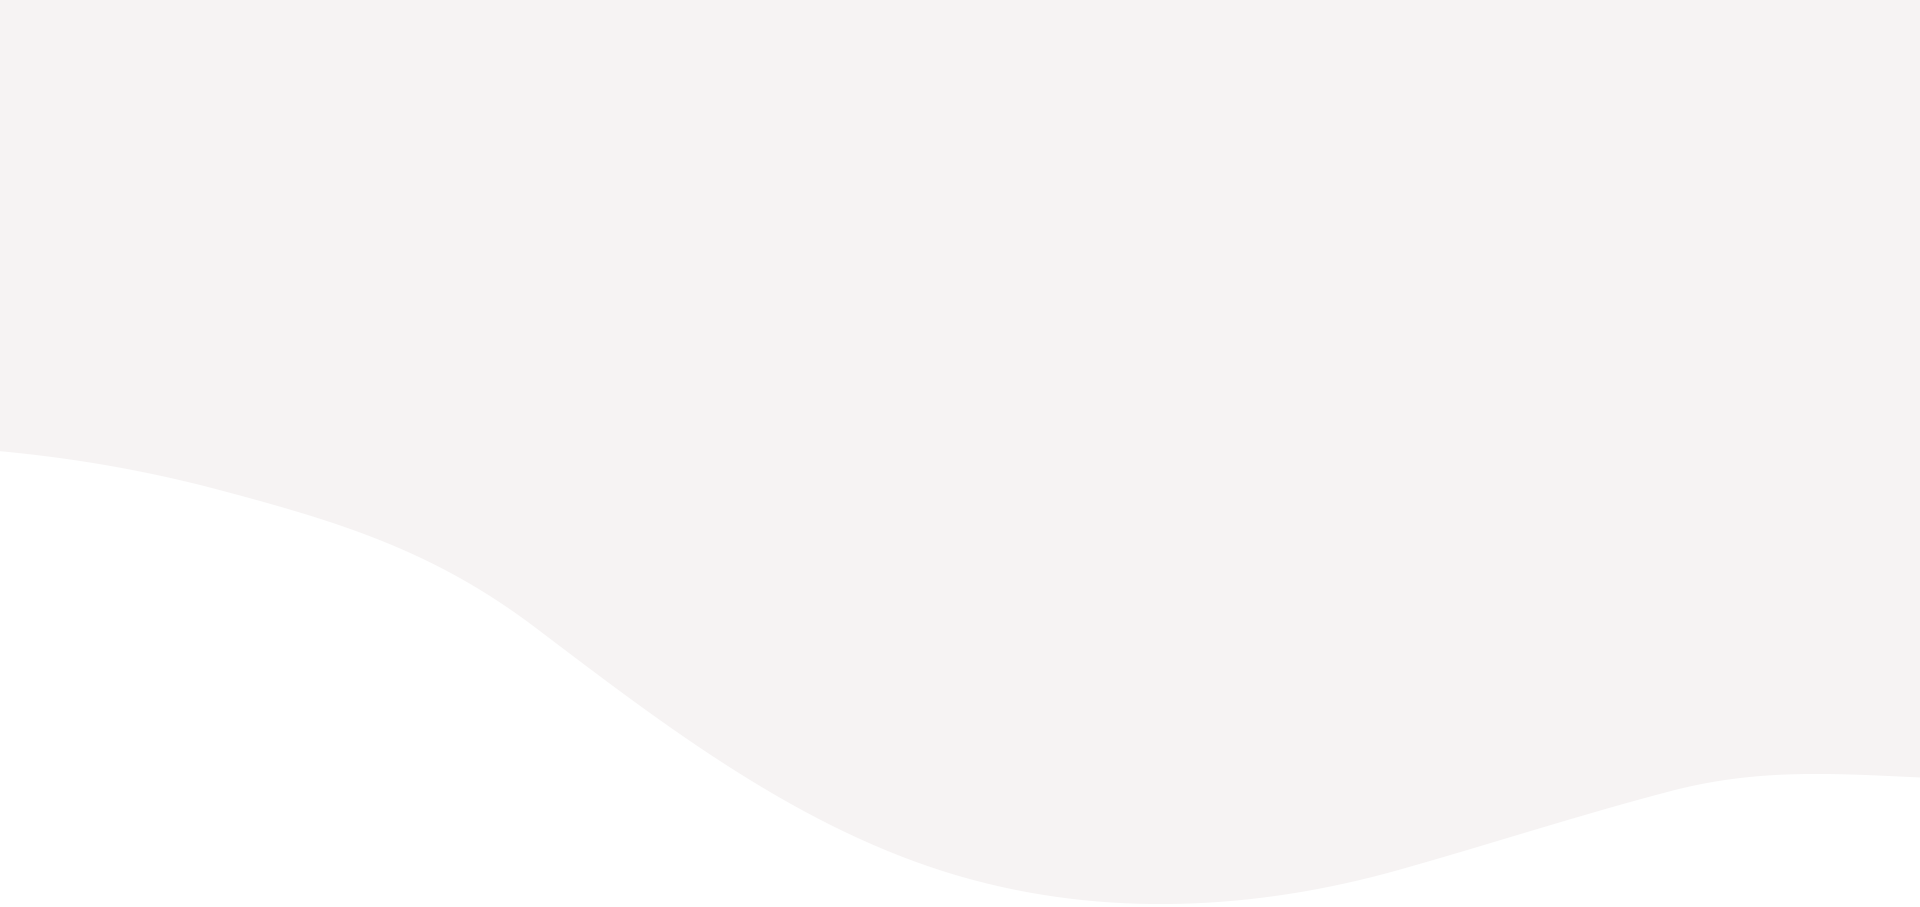 banner-background-new.png